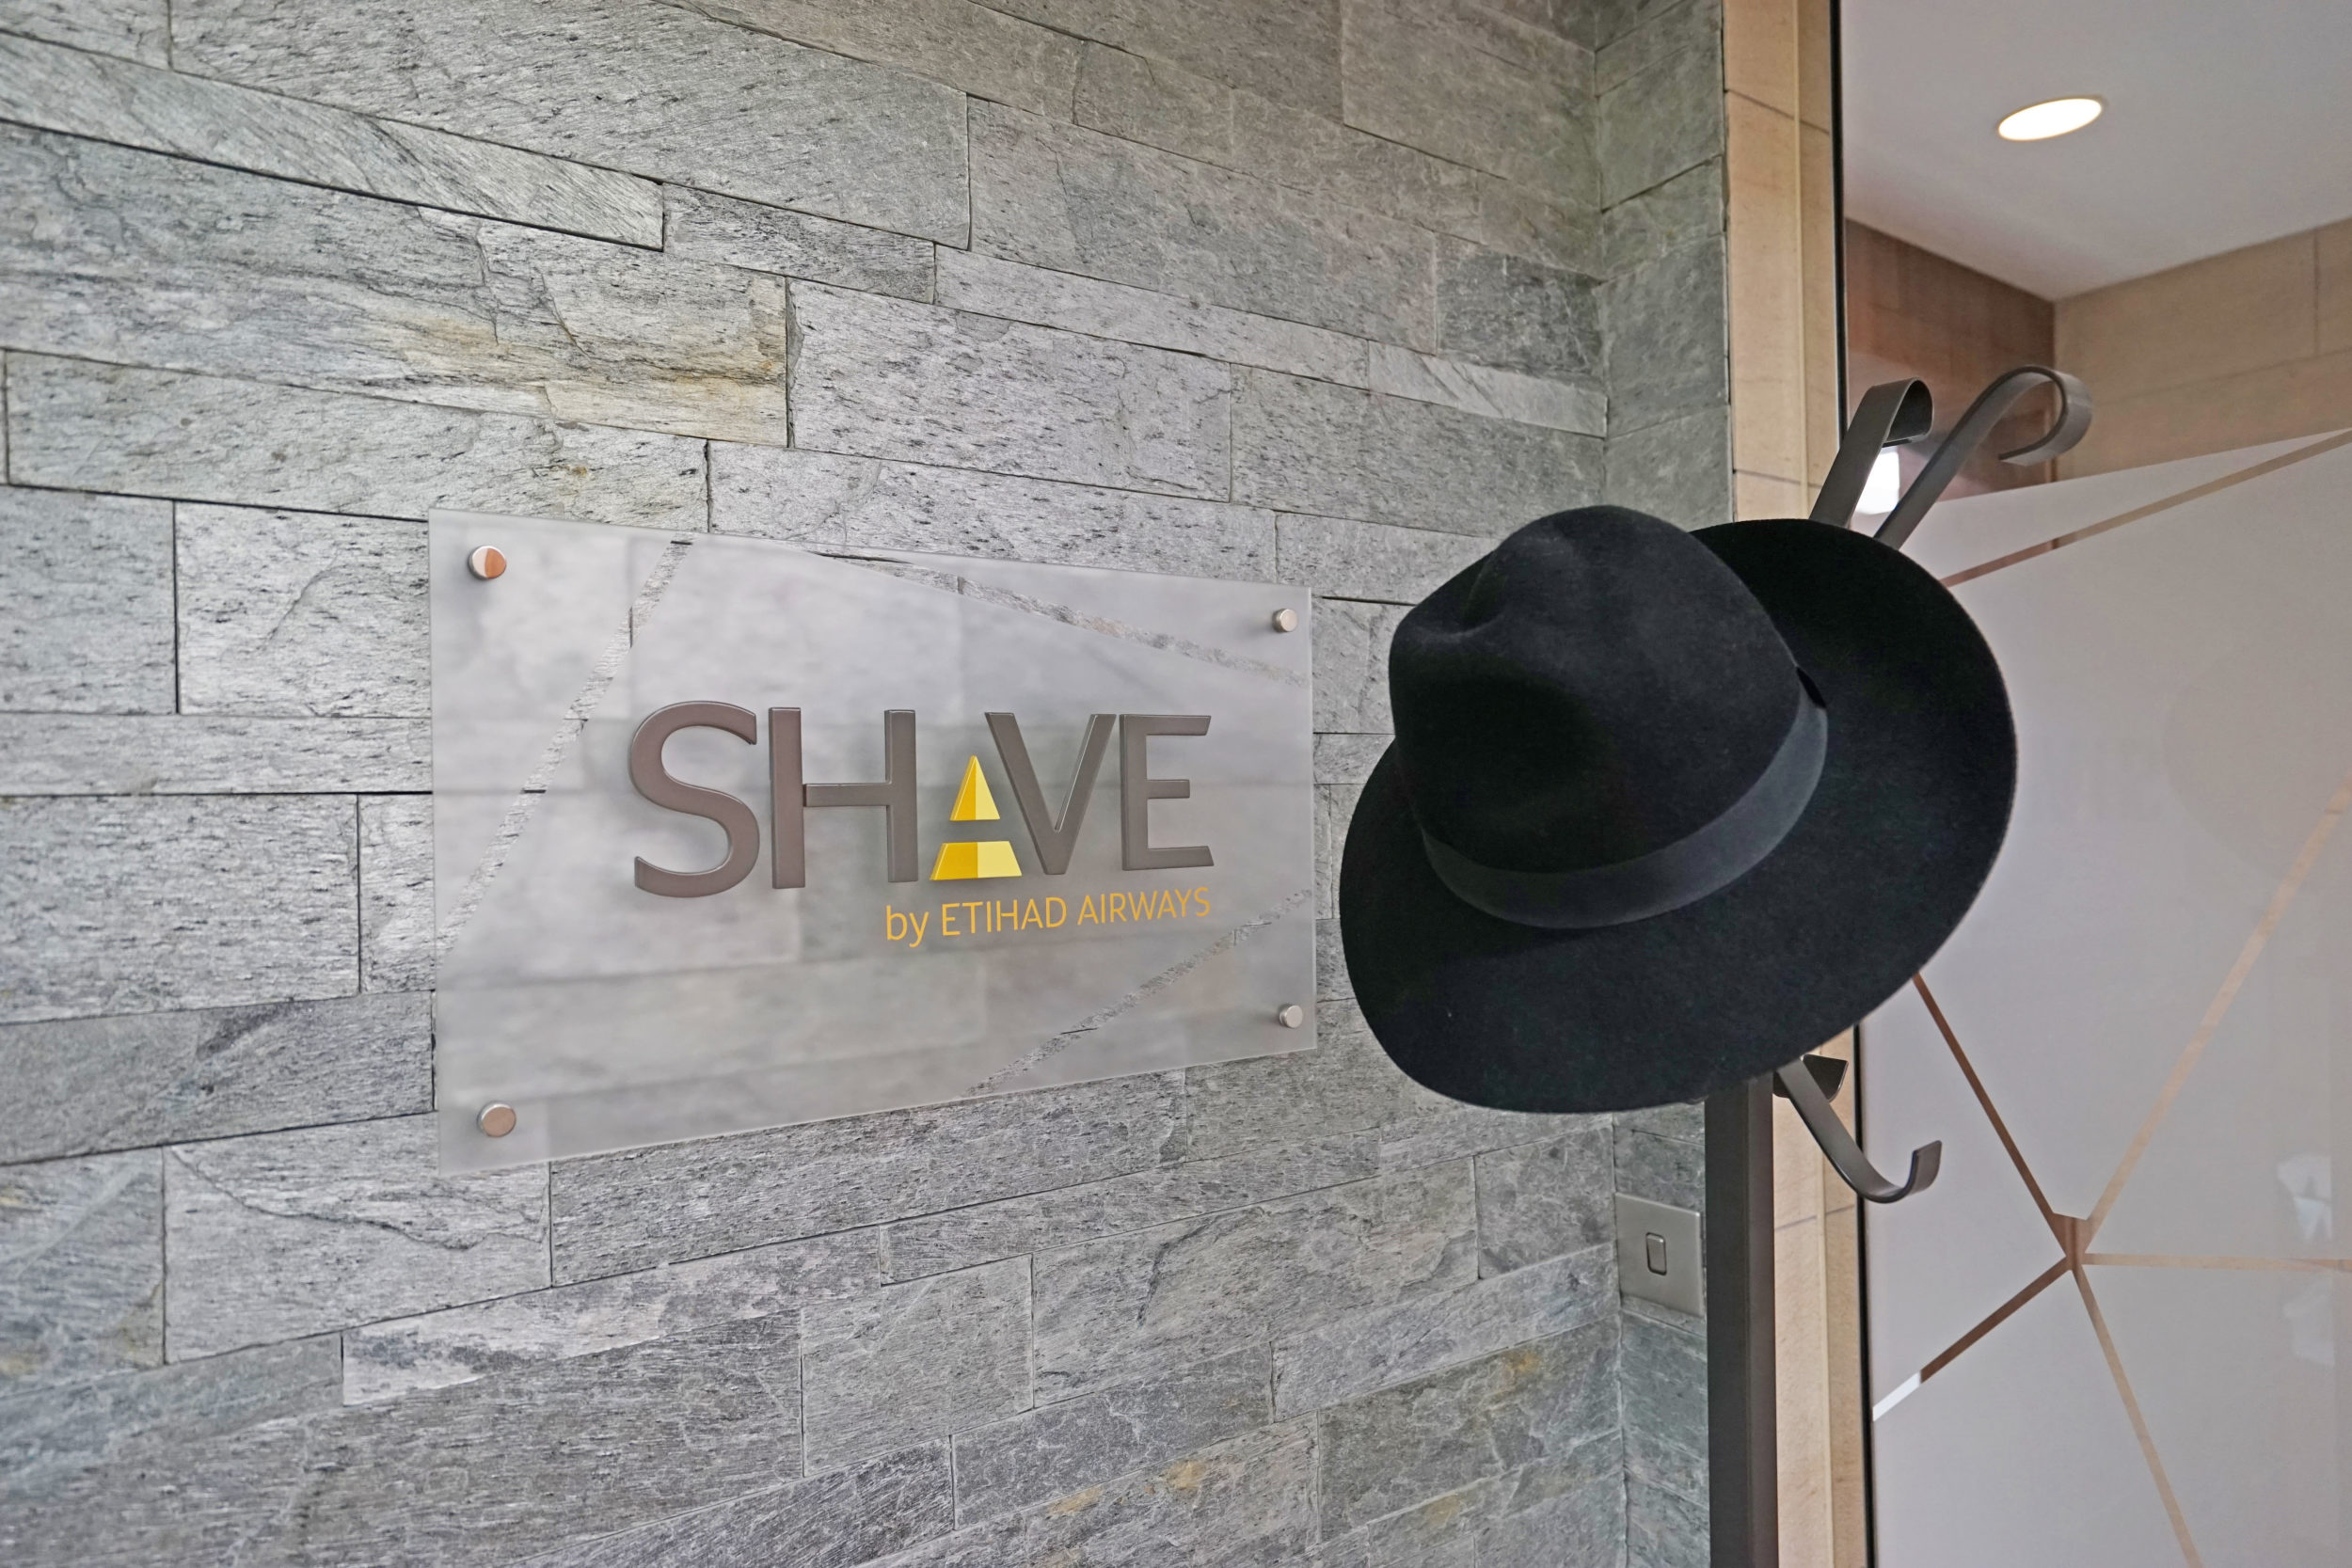 Etihad Airways Abu Dhabi Arrivals Lounge Shave